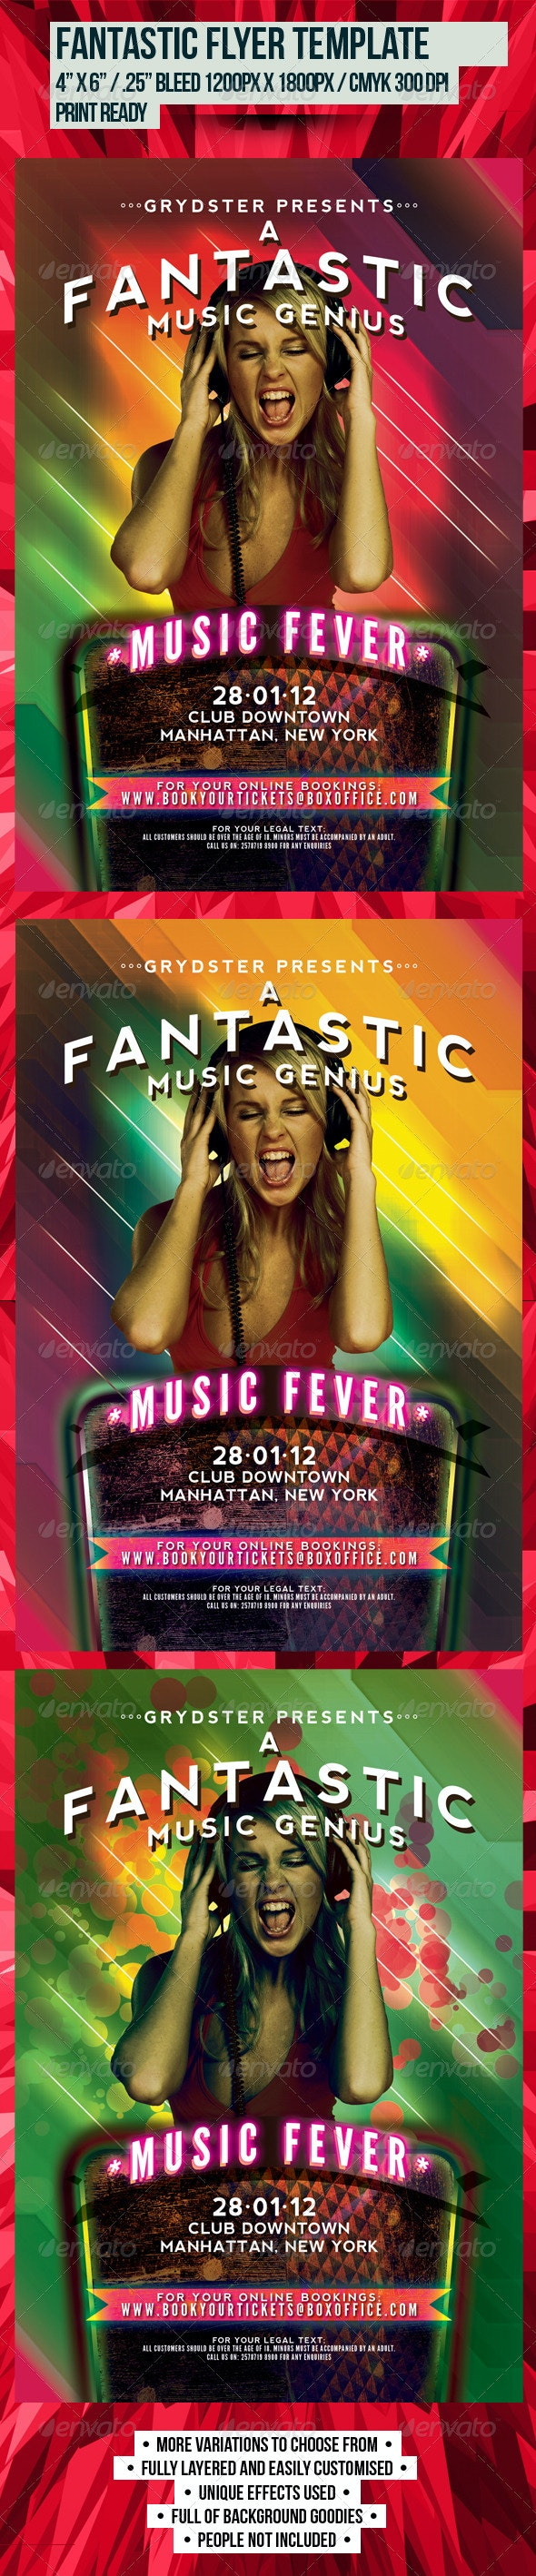 Fantastic Flyer Template - Clubs & Parties Events